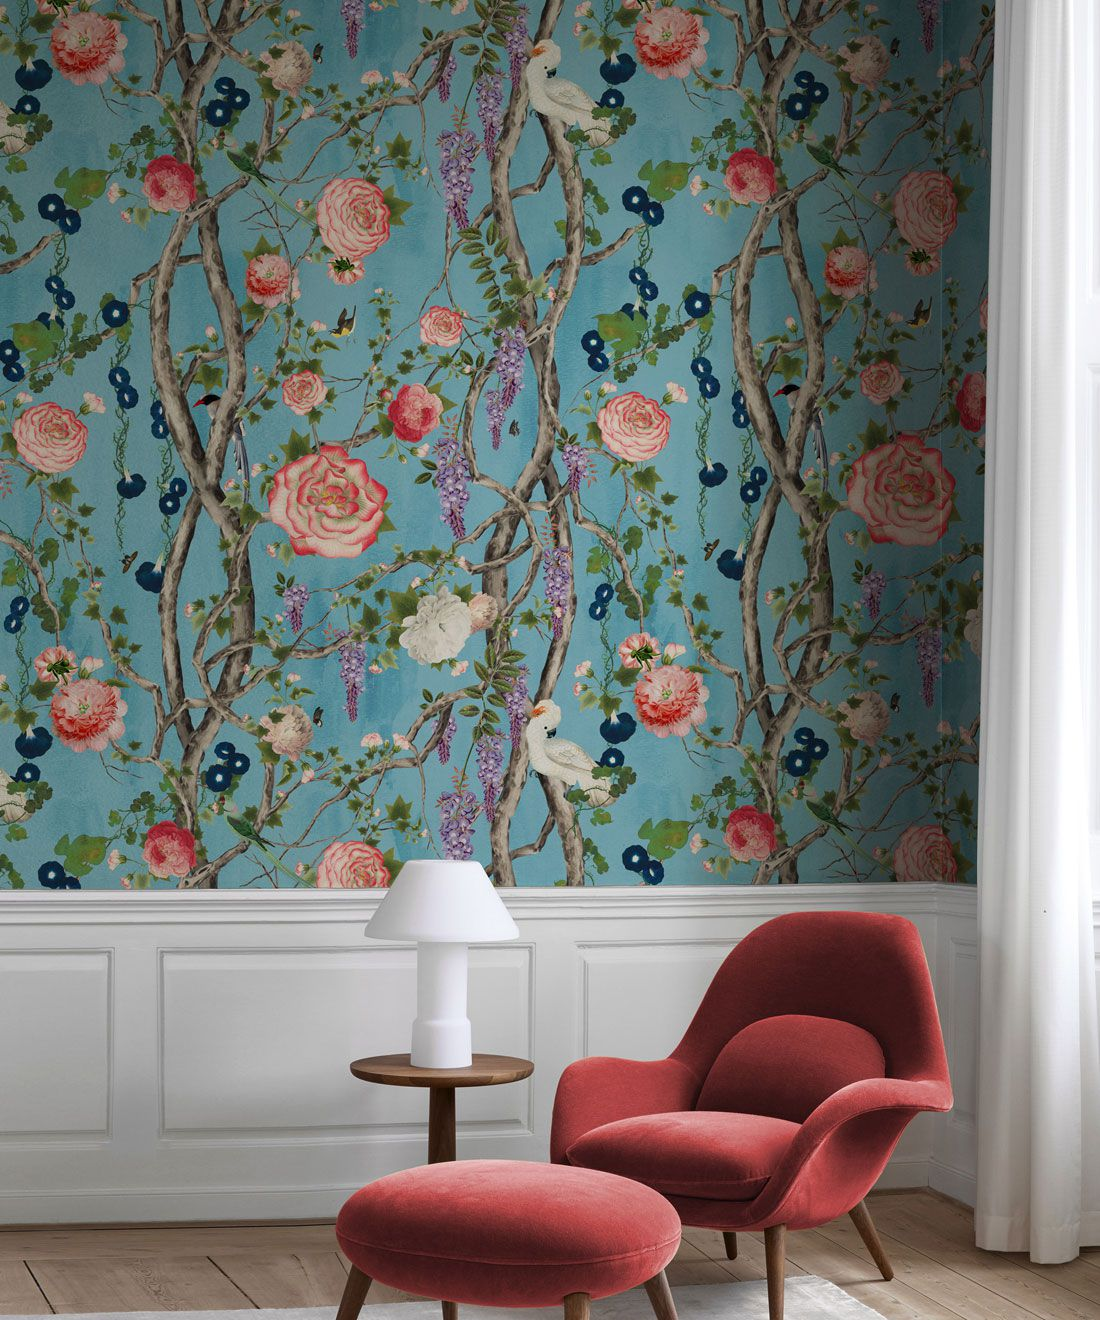 Empress Wallpaper • Romantic Wallpaper • Floral Wallpaper • Chinoiserie Wallpaper • Sky Blue colour wallpaper insitu